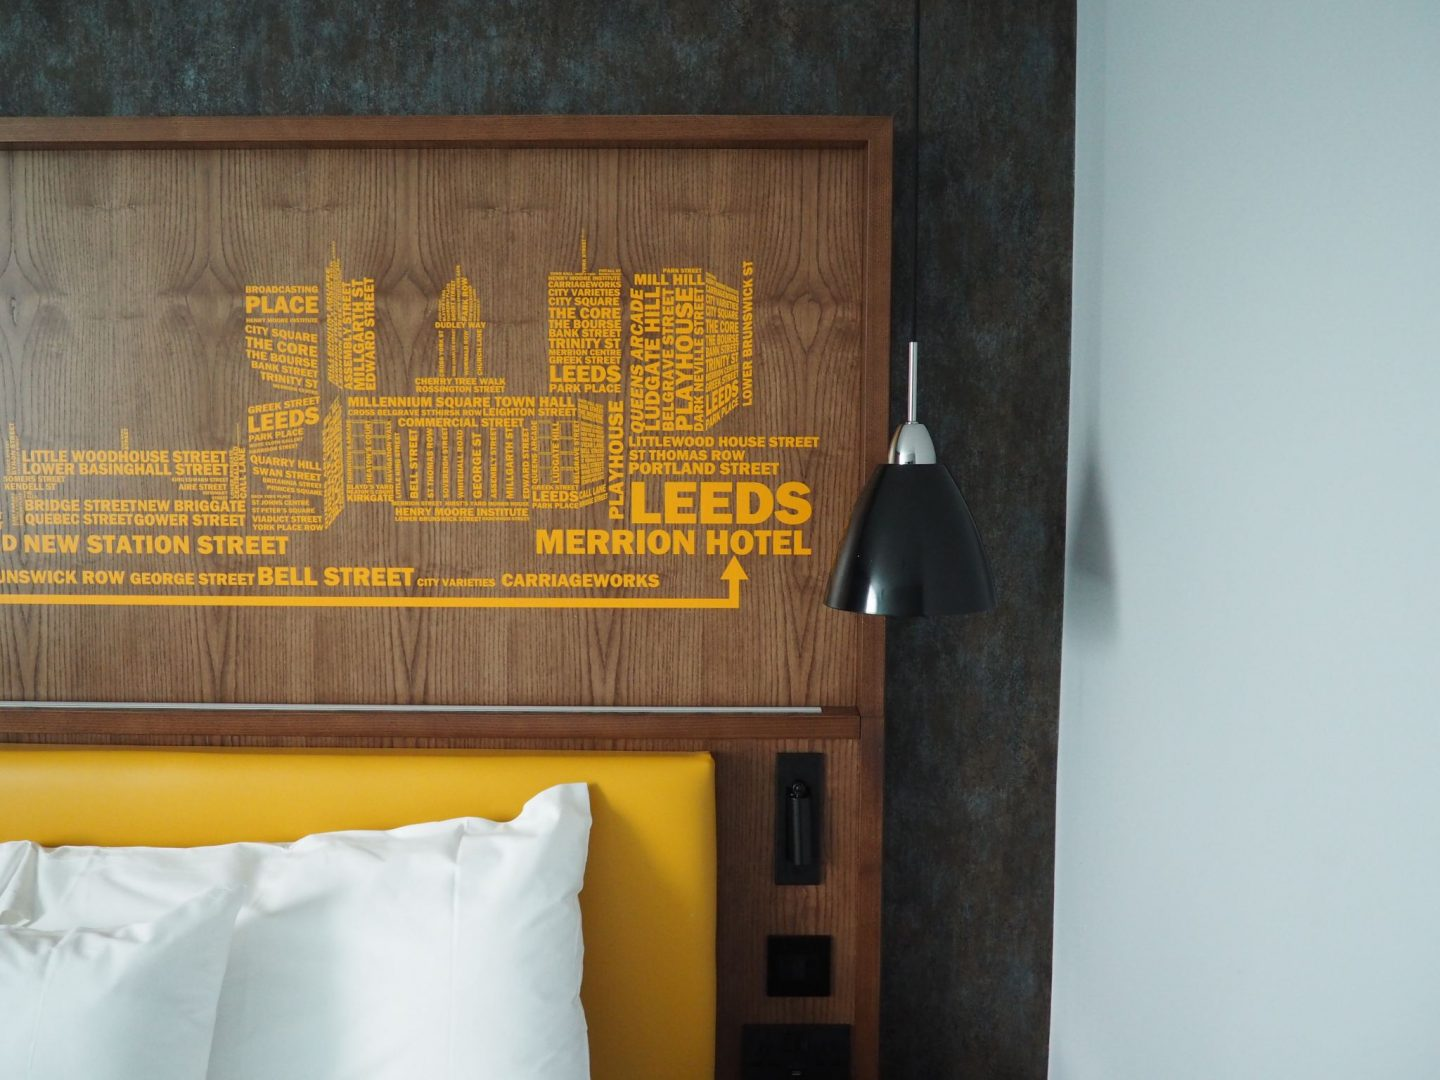 The Whole Hotel Is Themed Around Leeds Yorkshire With City Art From Local Artists On Display And Sayings Embedded Into Interior Design Of